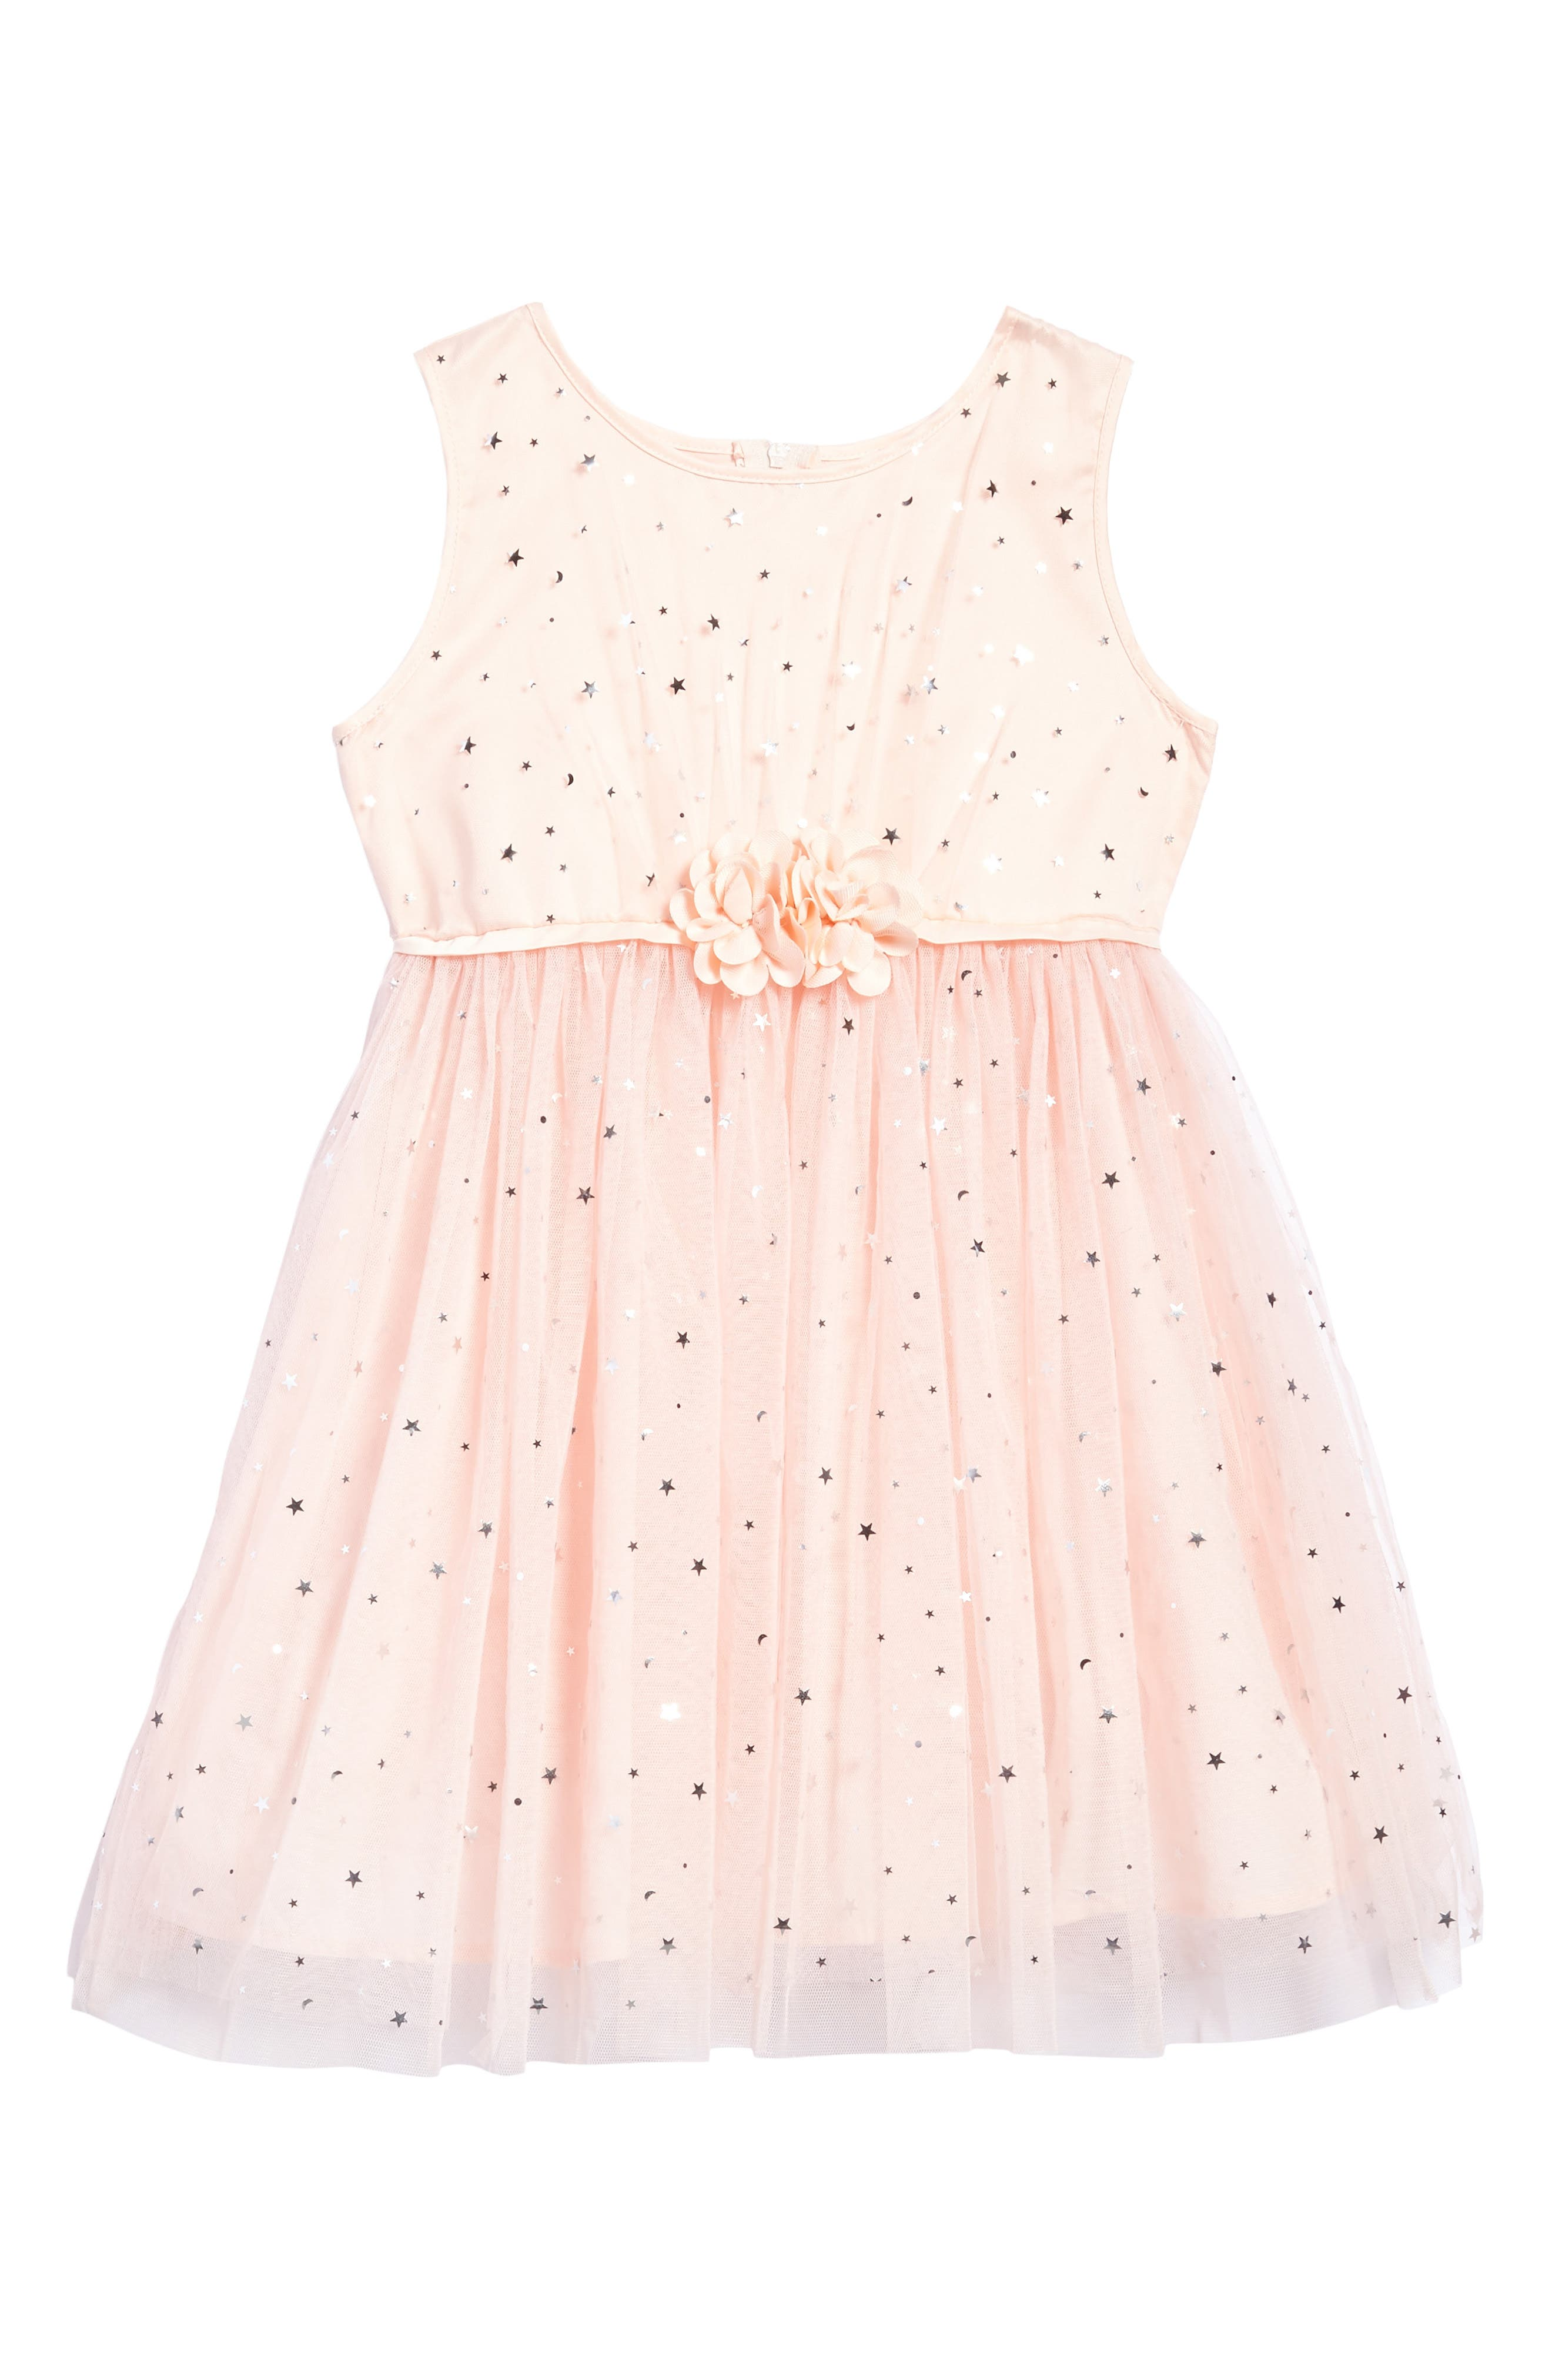 Star Tulle Dress,                             Main thumbnail 1, color,                             680